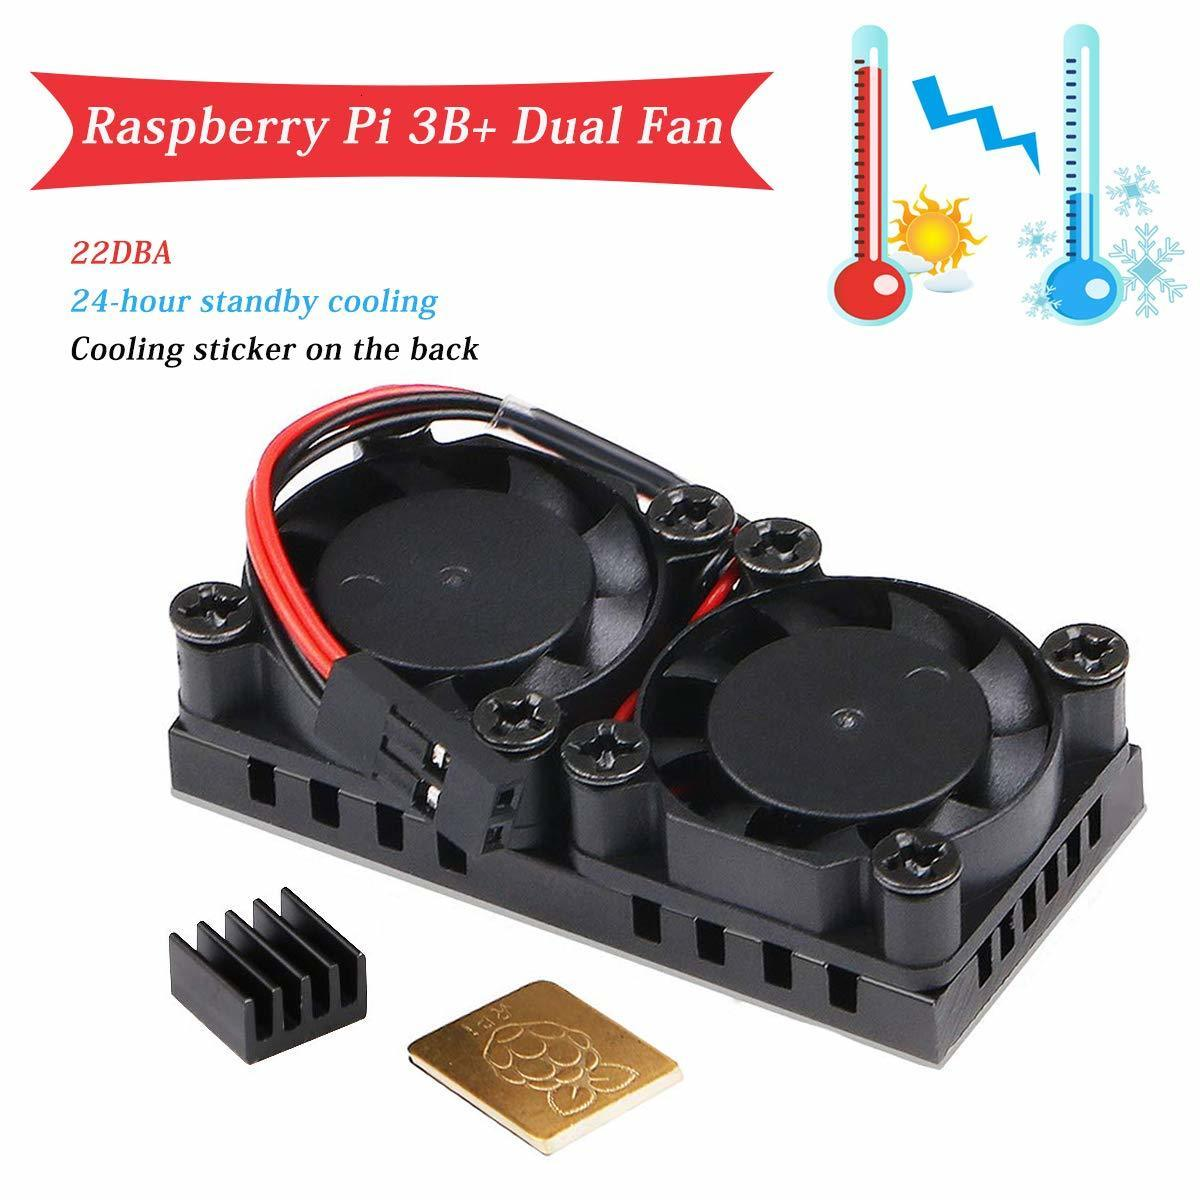 Raspberry Pi 4 Model B Dual Fan with Heat Sink Ultimate Double Cooling Fans Cooler Optional for Raspberry Pi 3/3B+/4B